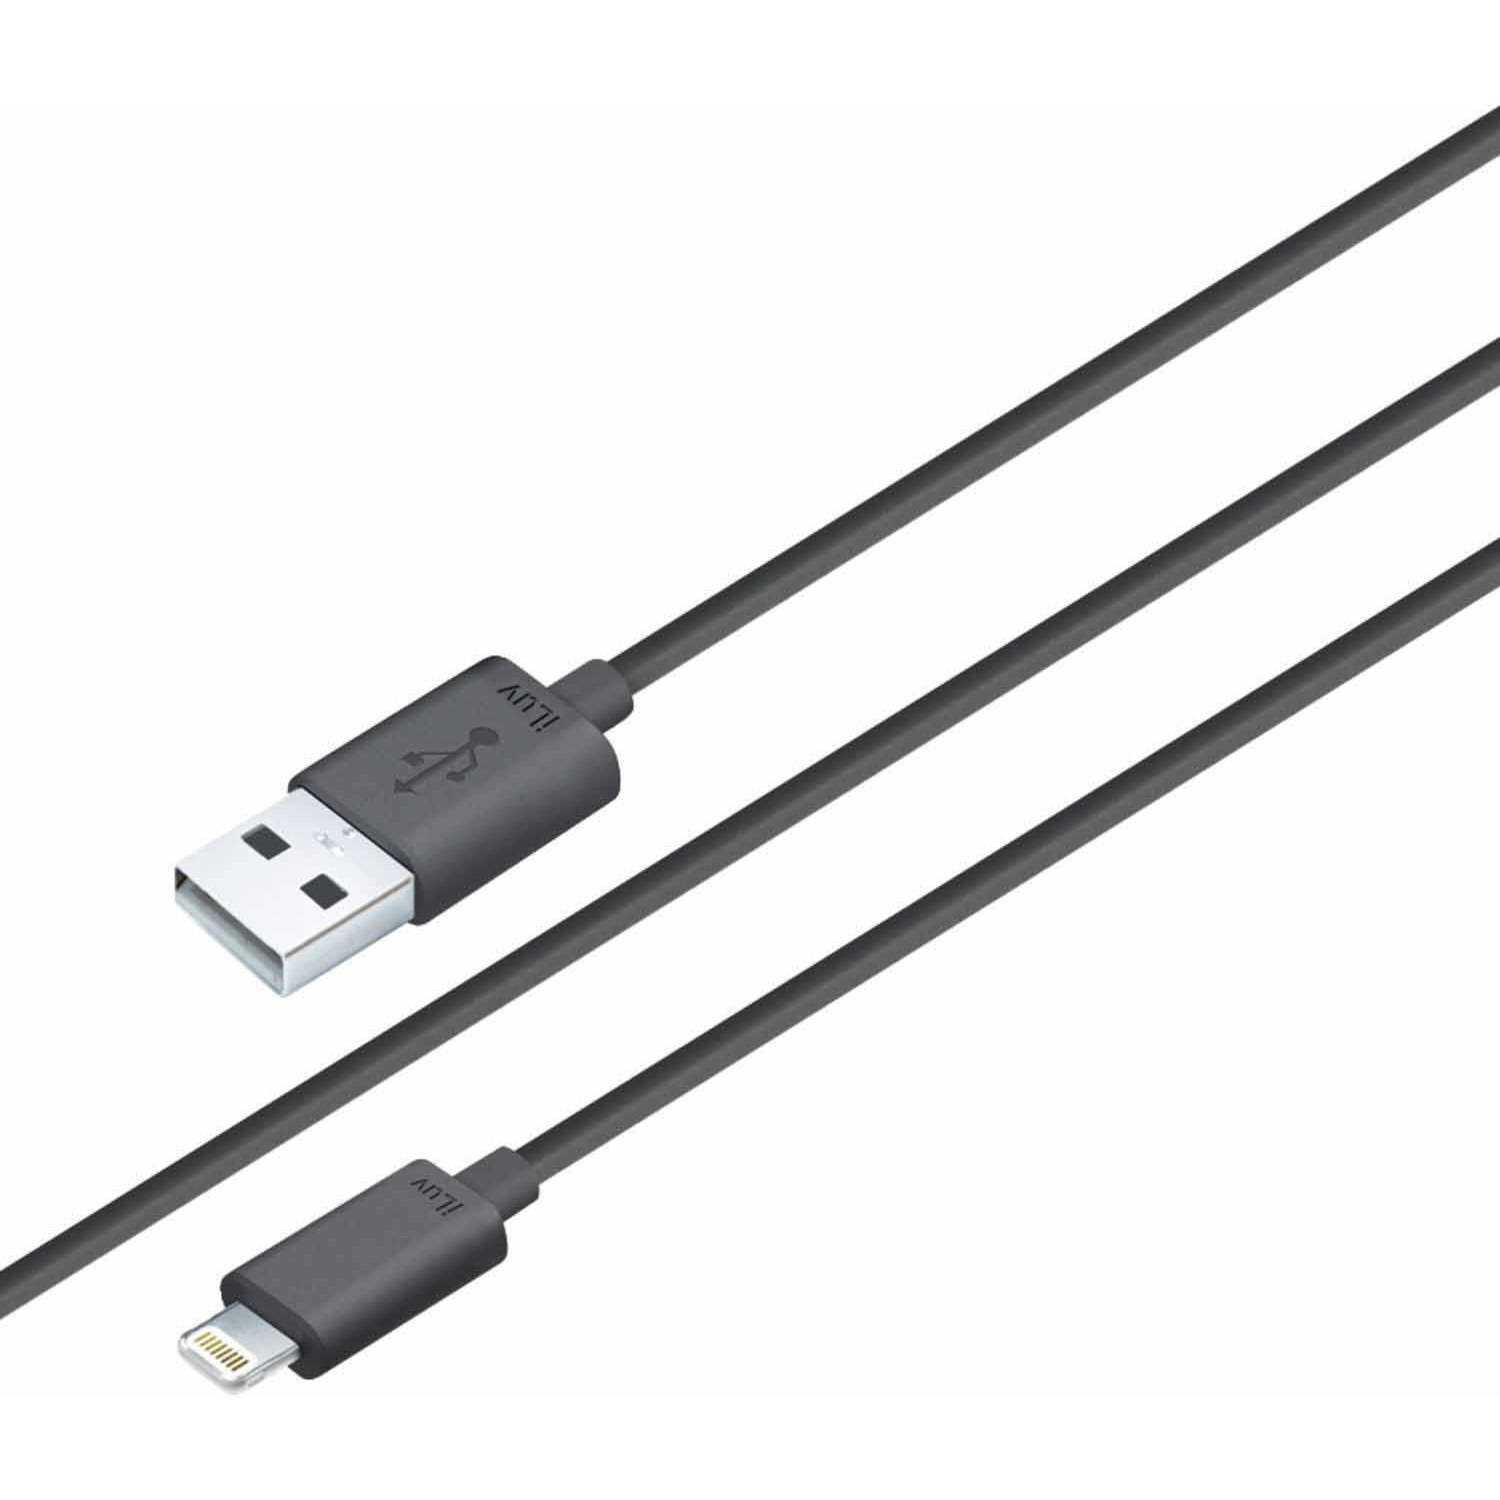 iLuv Icb264 Lightning Cable, 6'